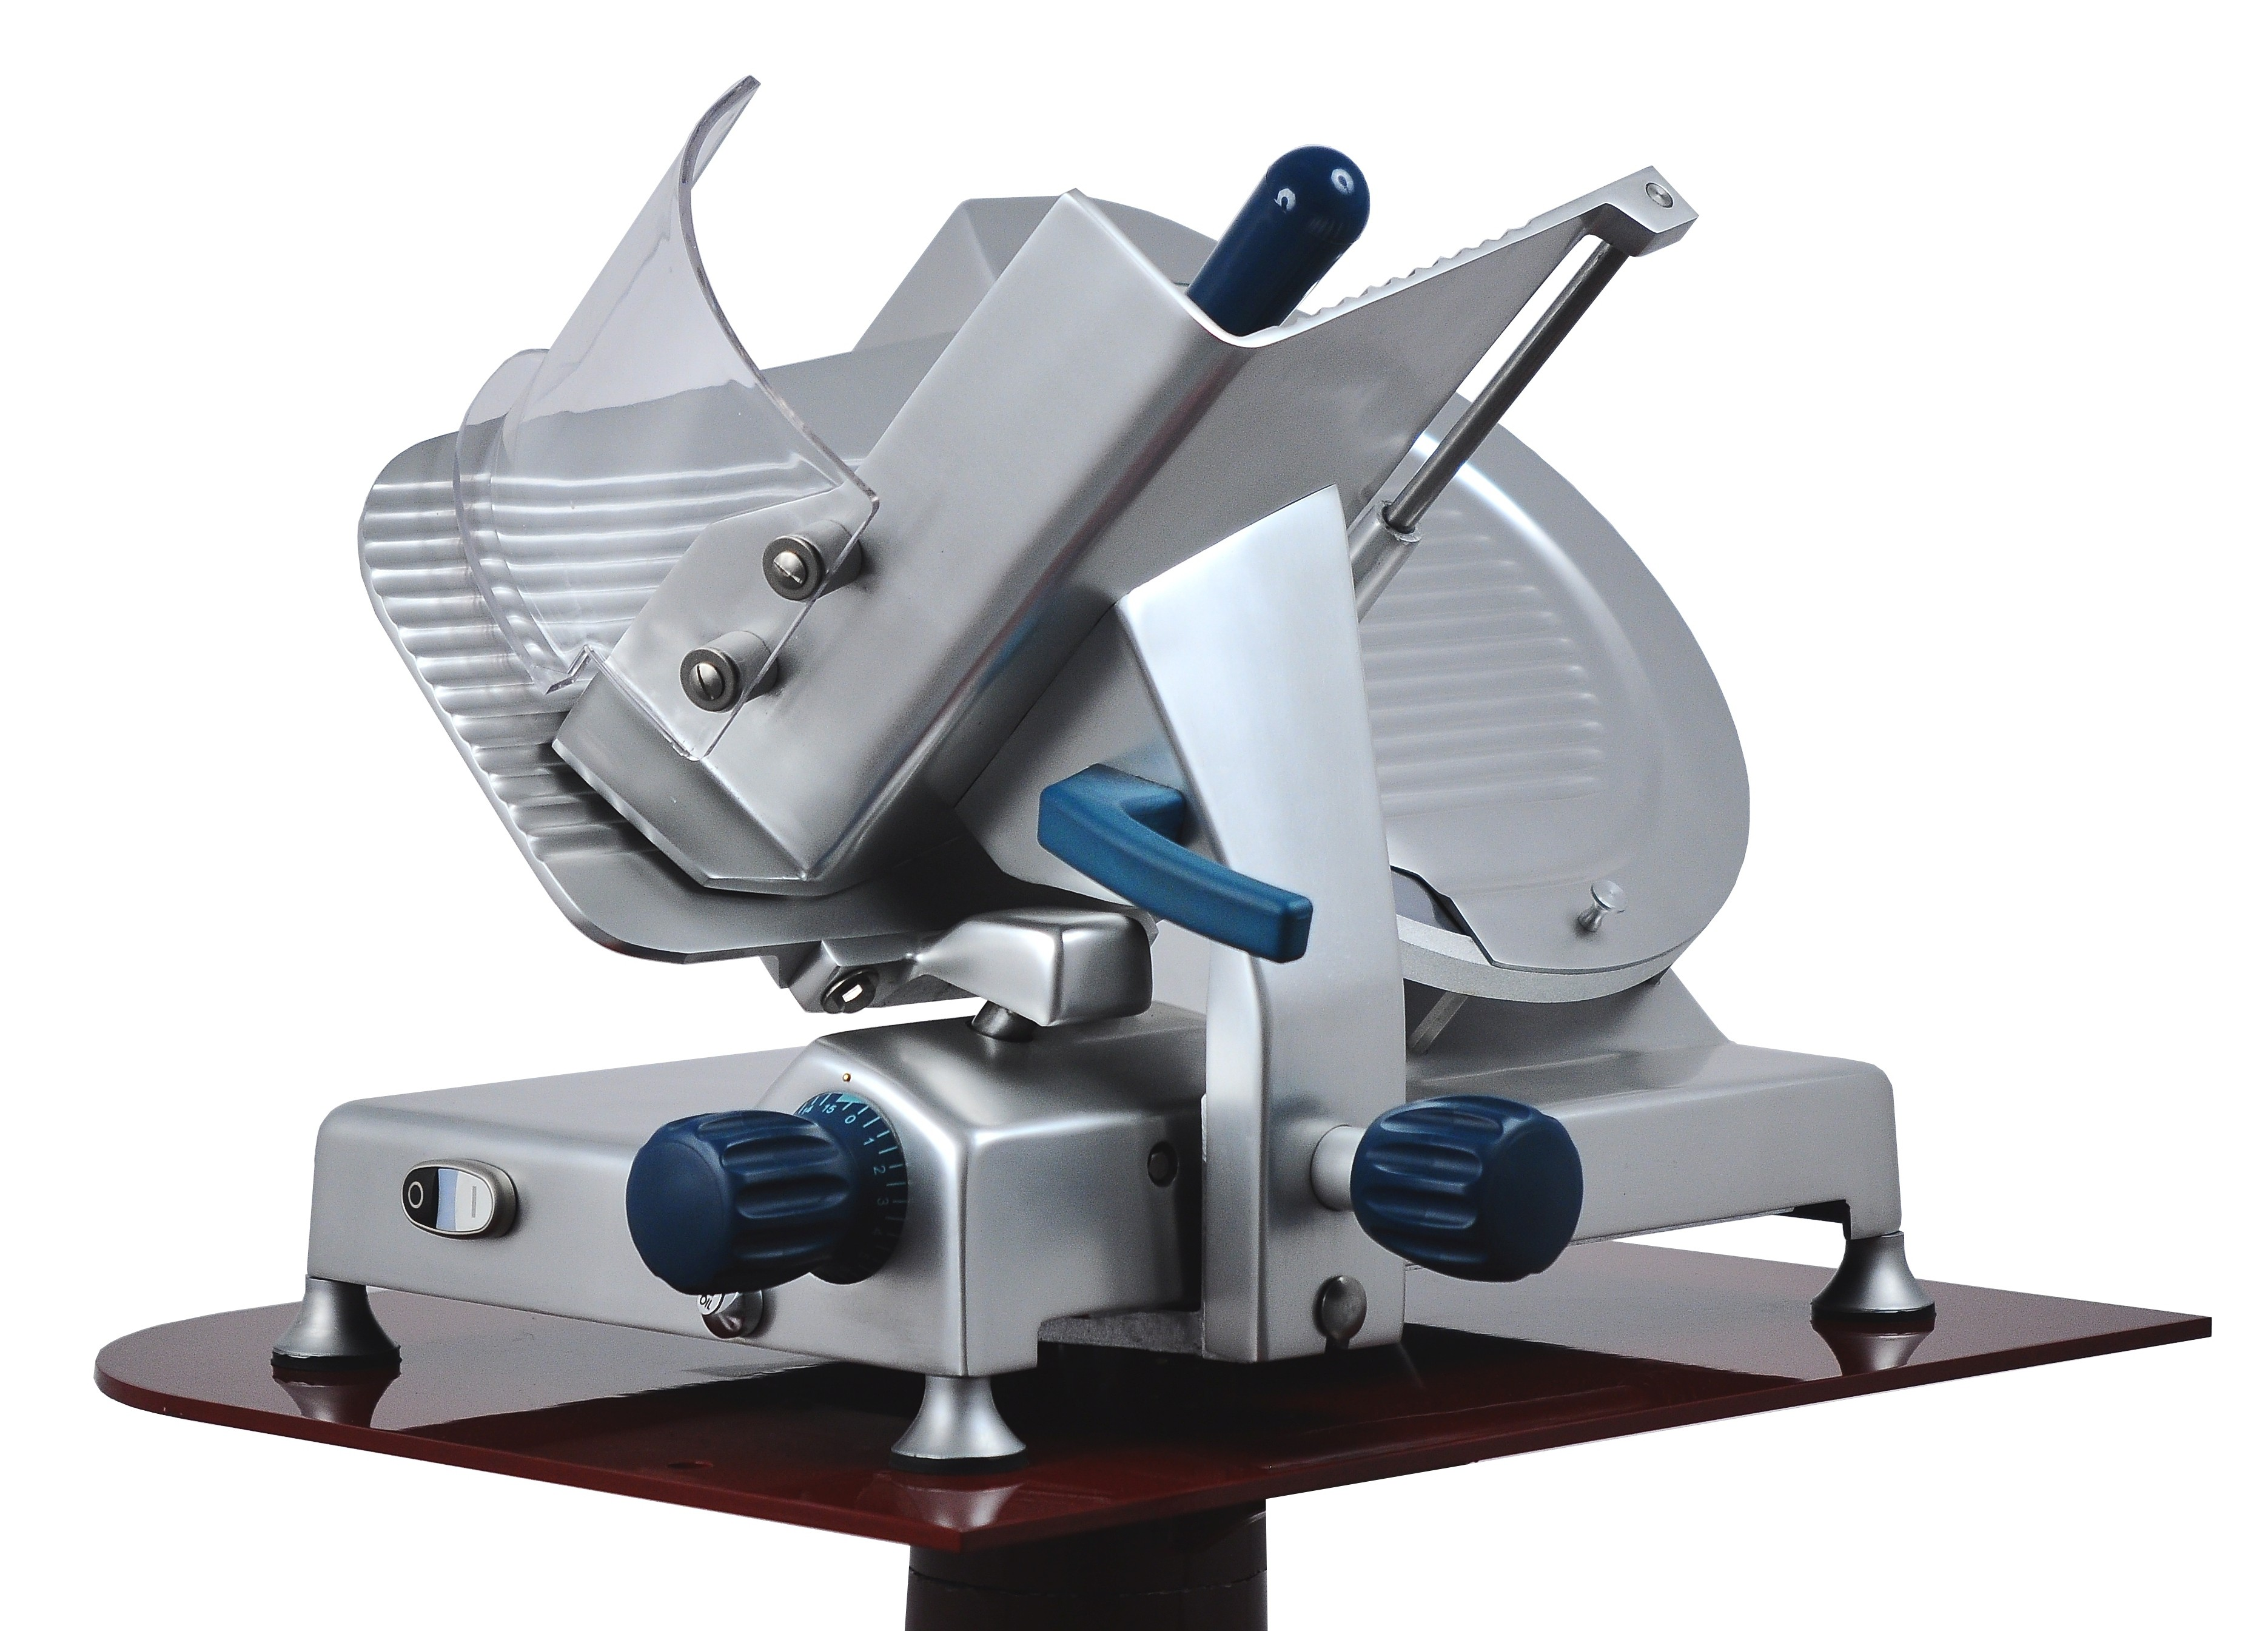 Noaw 300G Meat Slicer Spares